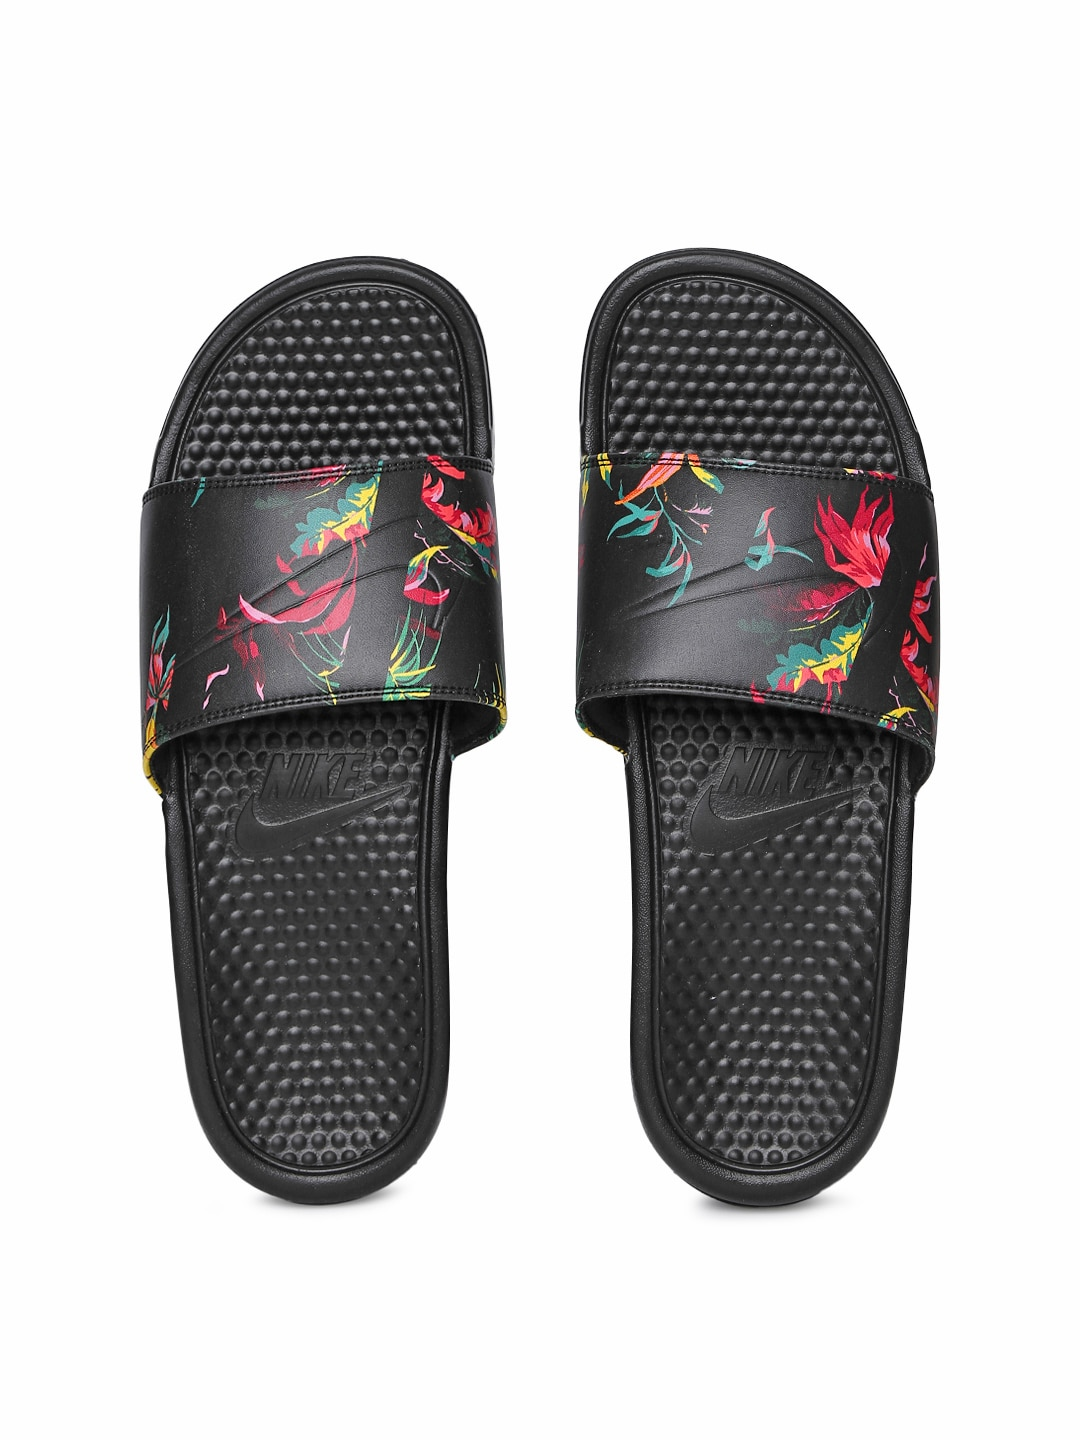 outlet store 0a2fb 66b41 Nike Supra Flip Flops Shorts - Buy Nike Supra Flip Flops Shorts online in  India